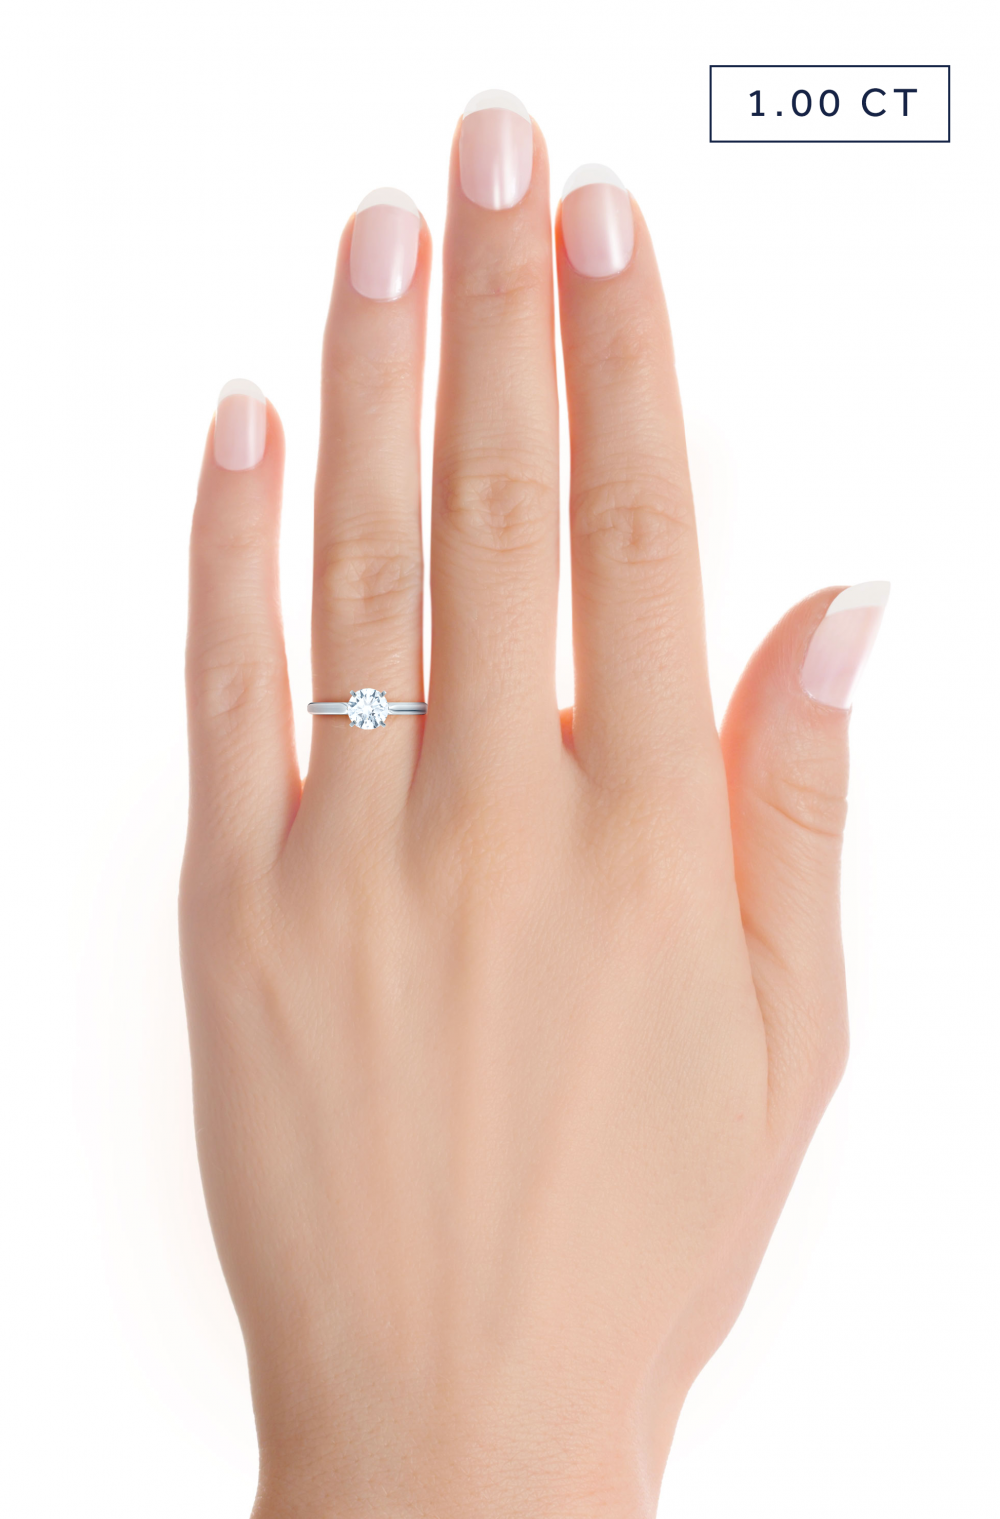 1 carat diamond on hand